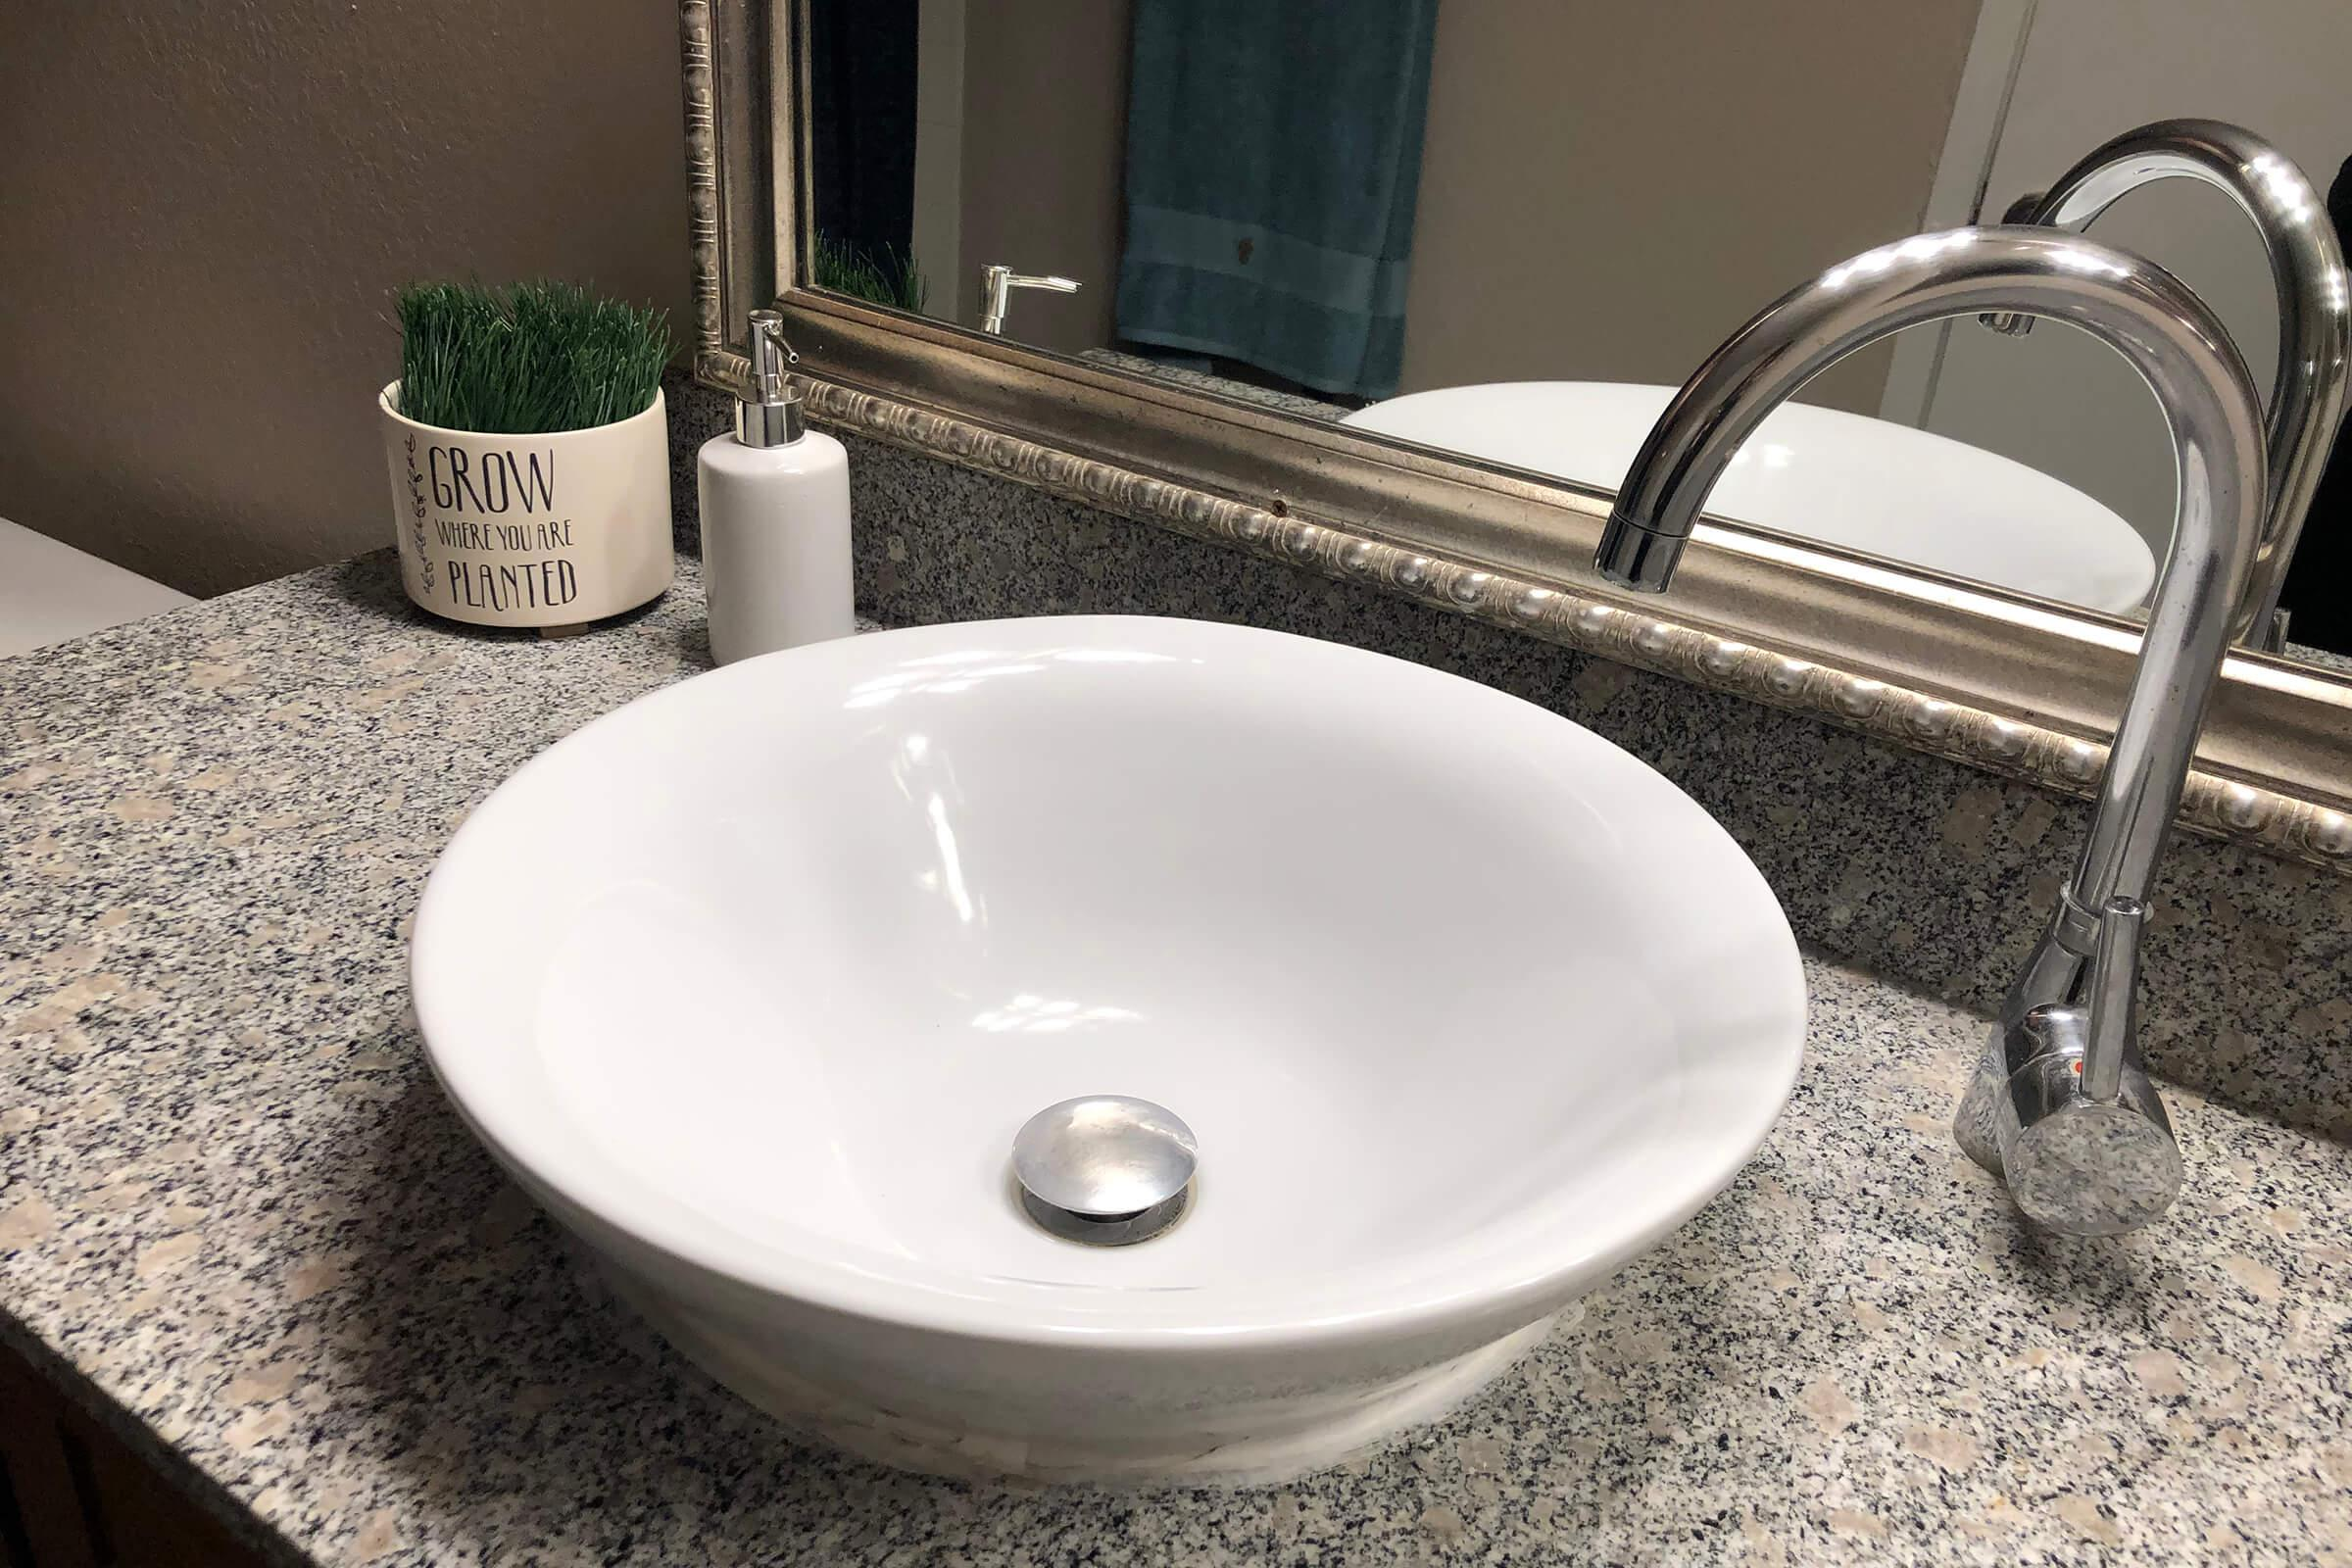 a close up of a bowl sink